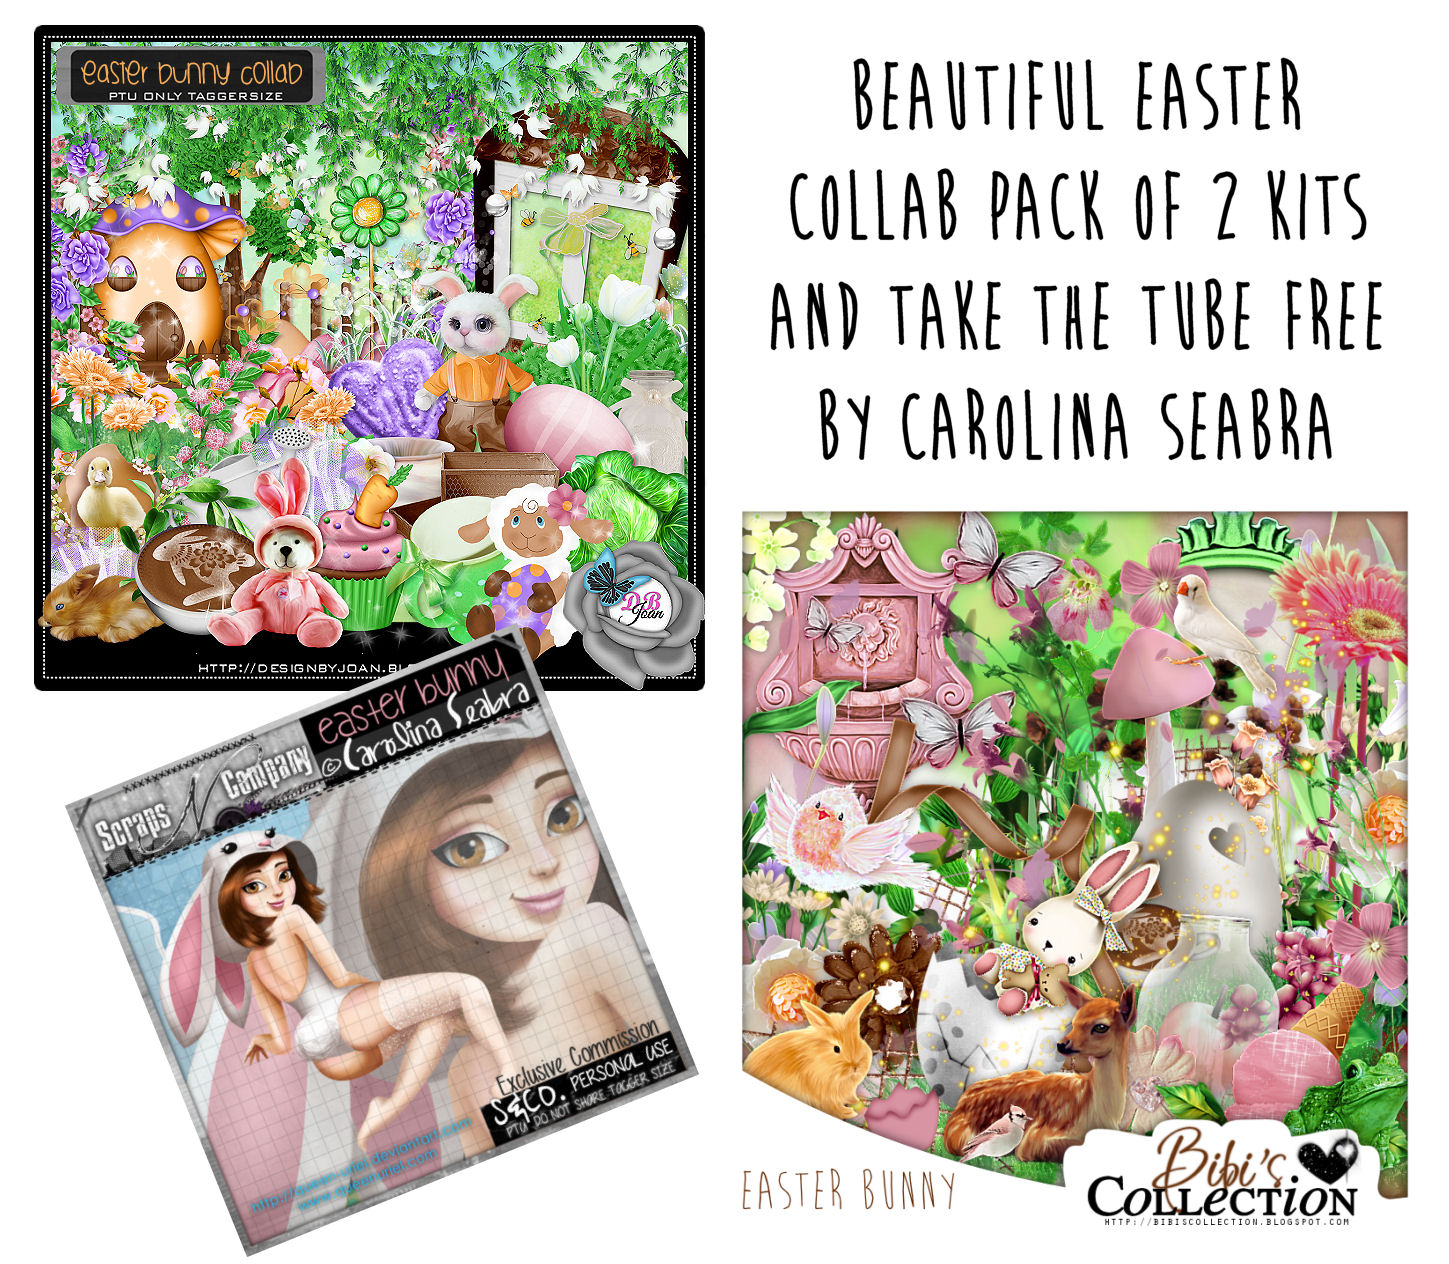 EASTER BUNNY 2KITS PACK AND FREE TUBE